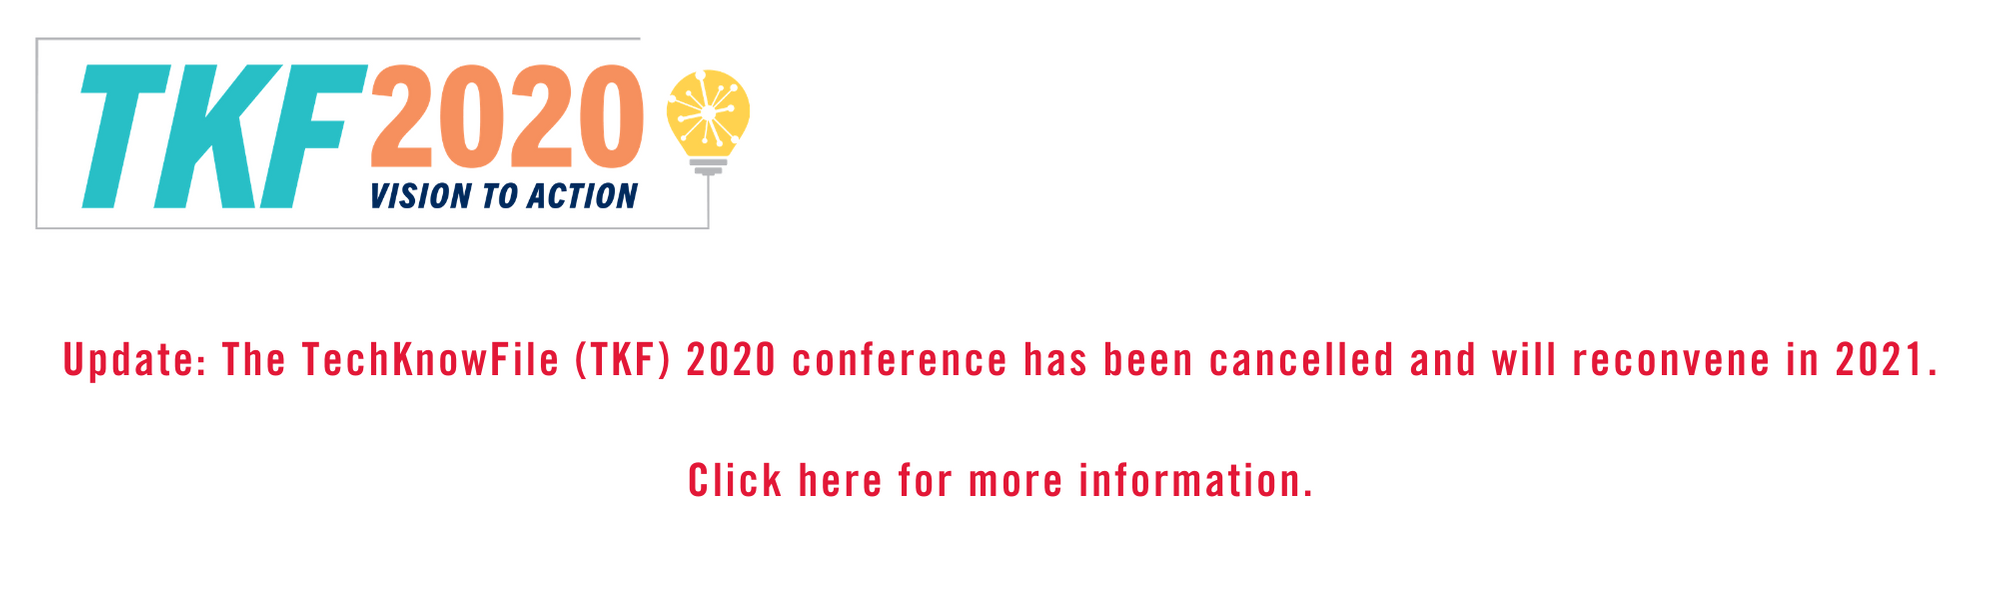 TKF 2020 Vision to Action - Update: The TechKnowFile (TKF) 2020 conference has been cancelled and will reconvene in 2021. Click here for more information